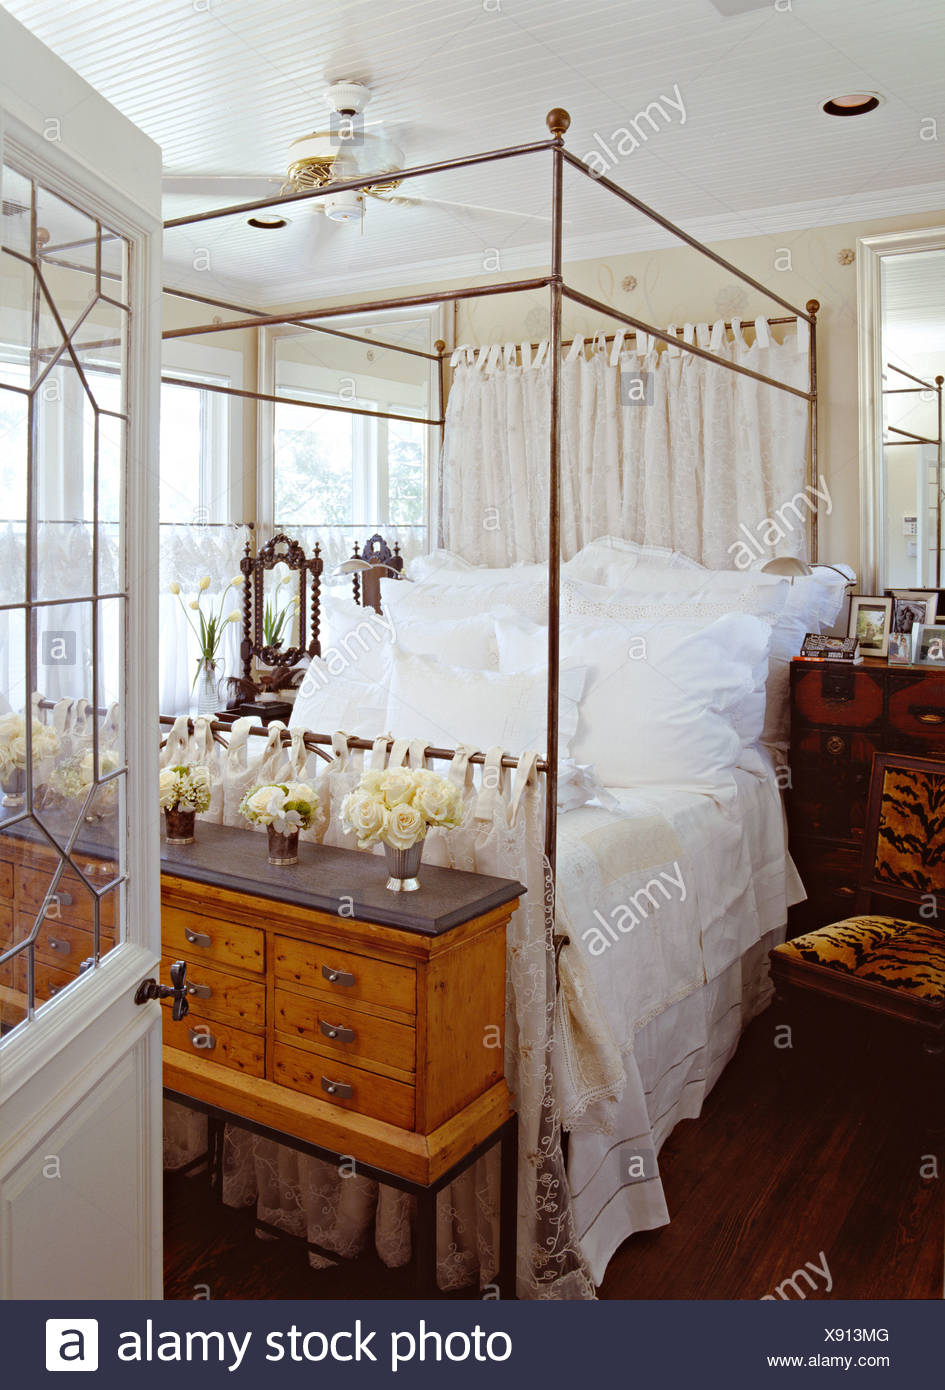 Single Four Poster Bed White Roses In Single Vases On Small Chest Below Metal Fourposter